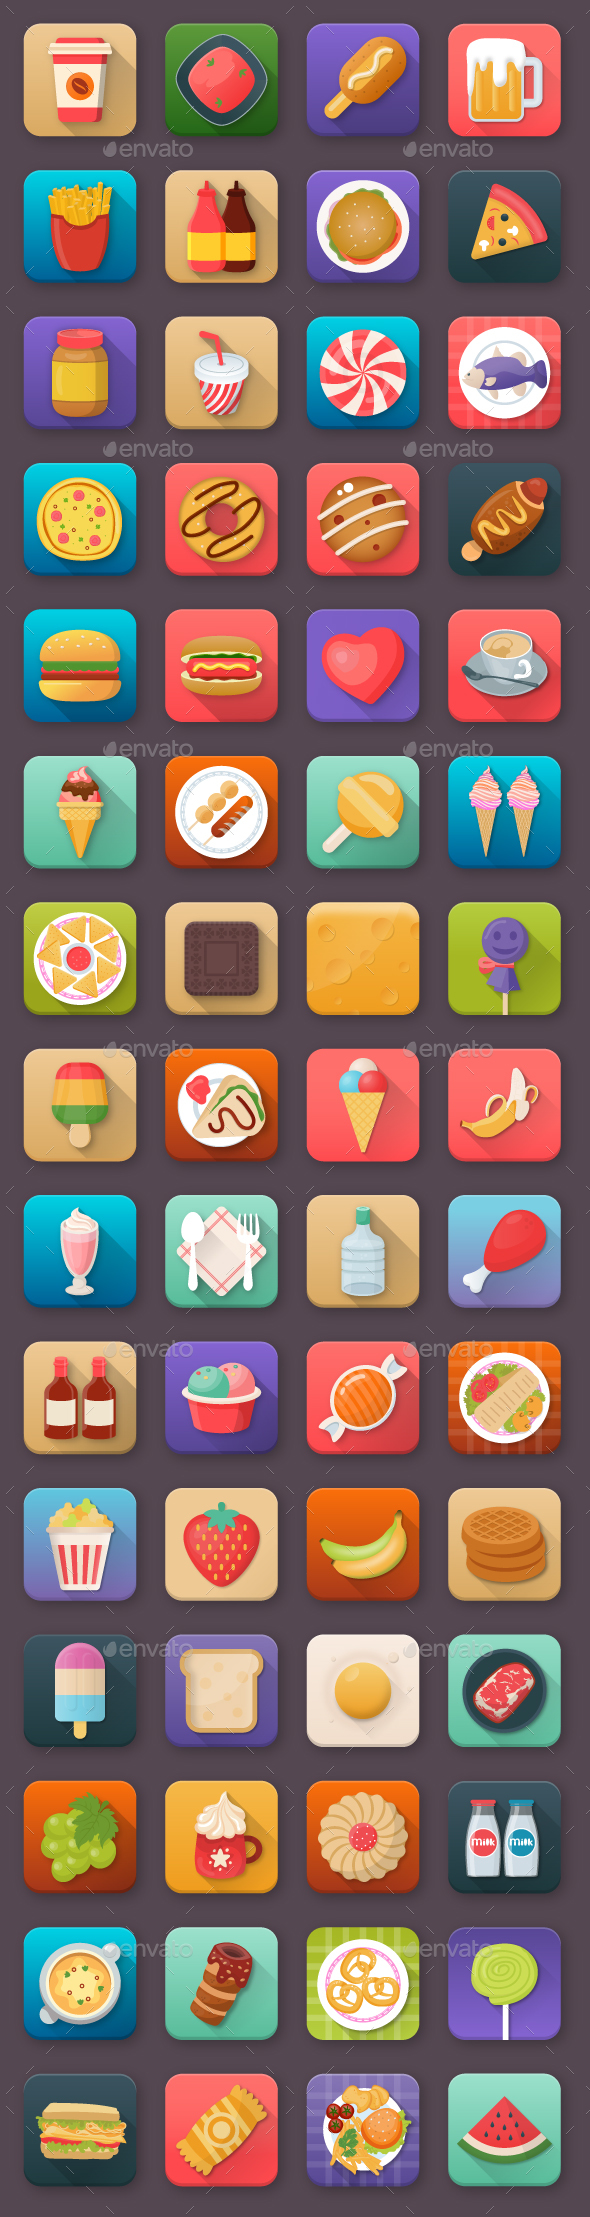 60 Food and Drinks App Icons - Icons